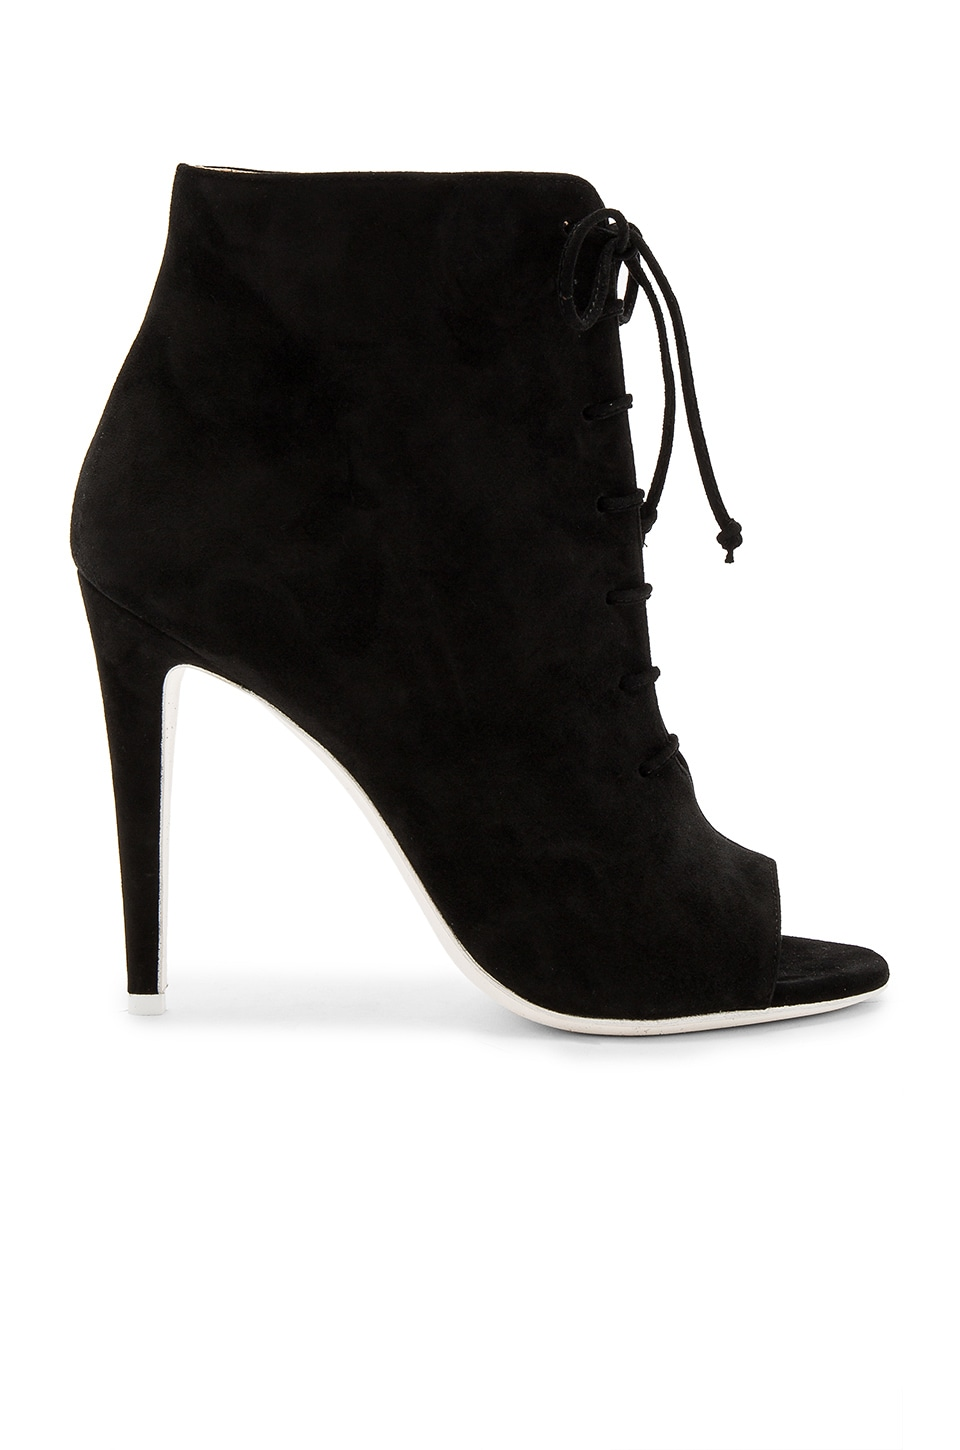 OFF-WHITE Open Toe Bootie in Black